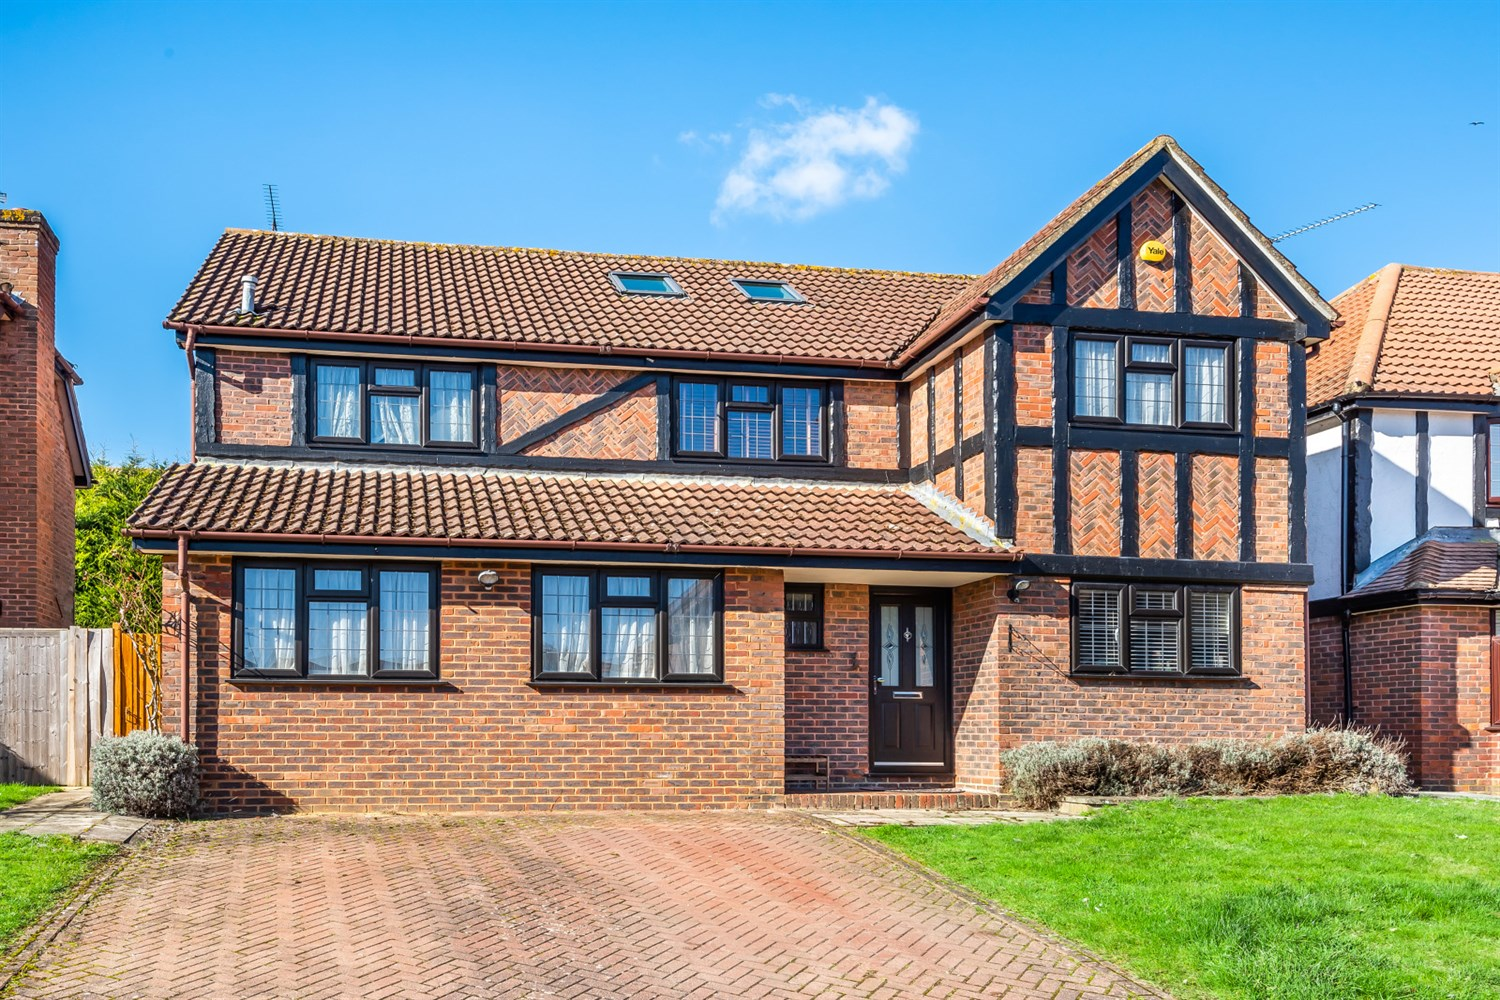 Uffcott Close, Reading, RG6 4BQ